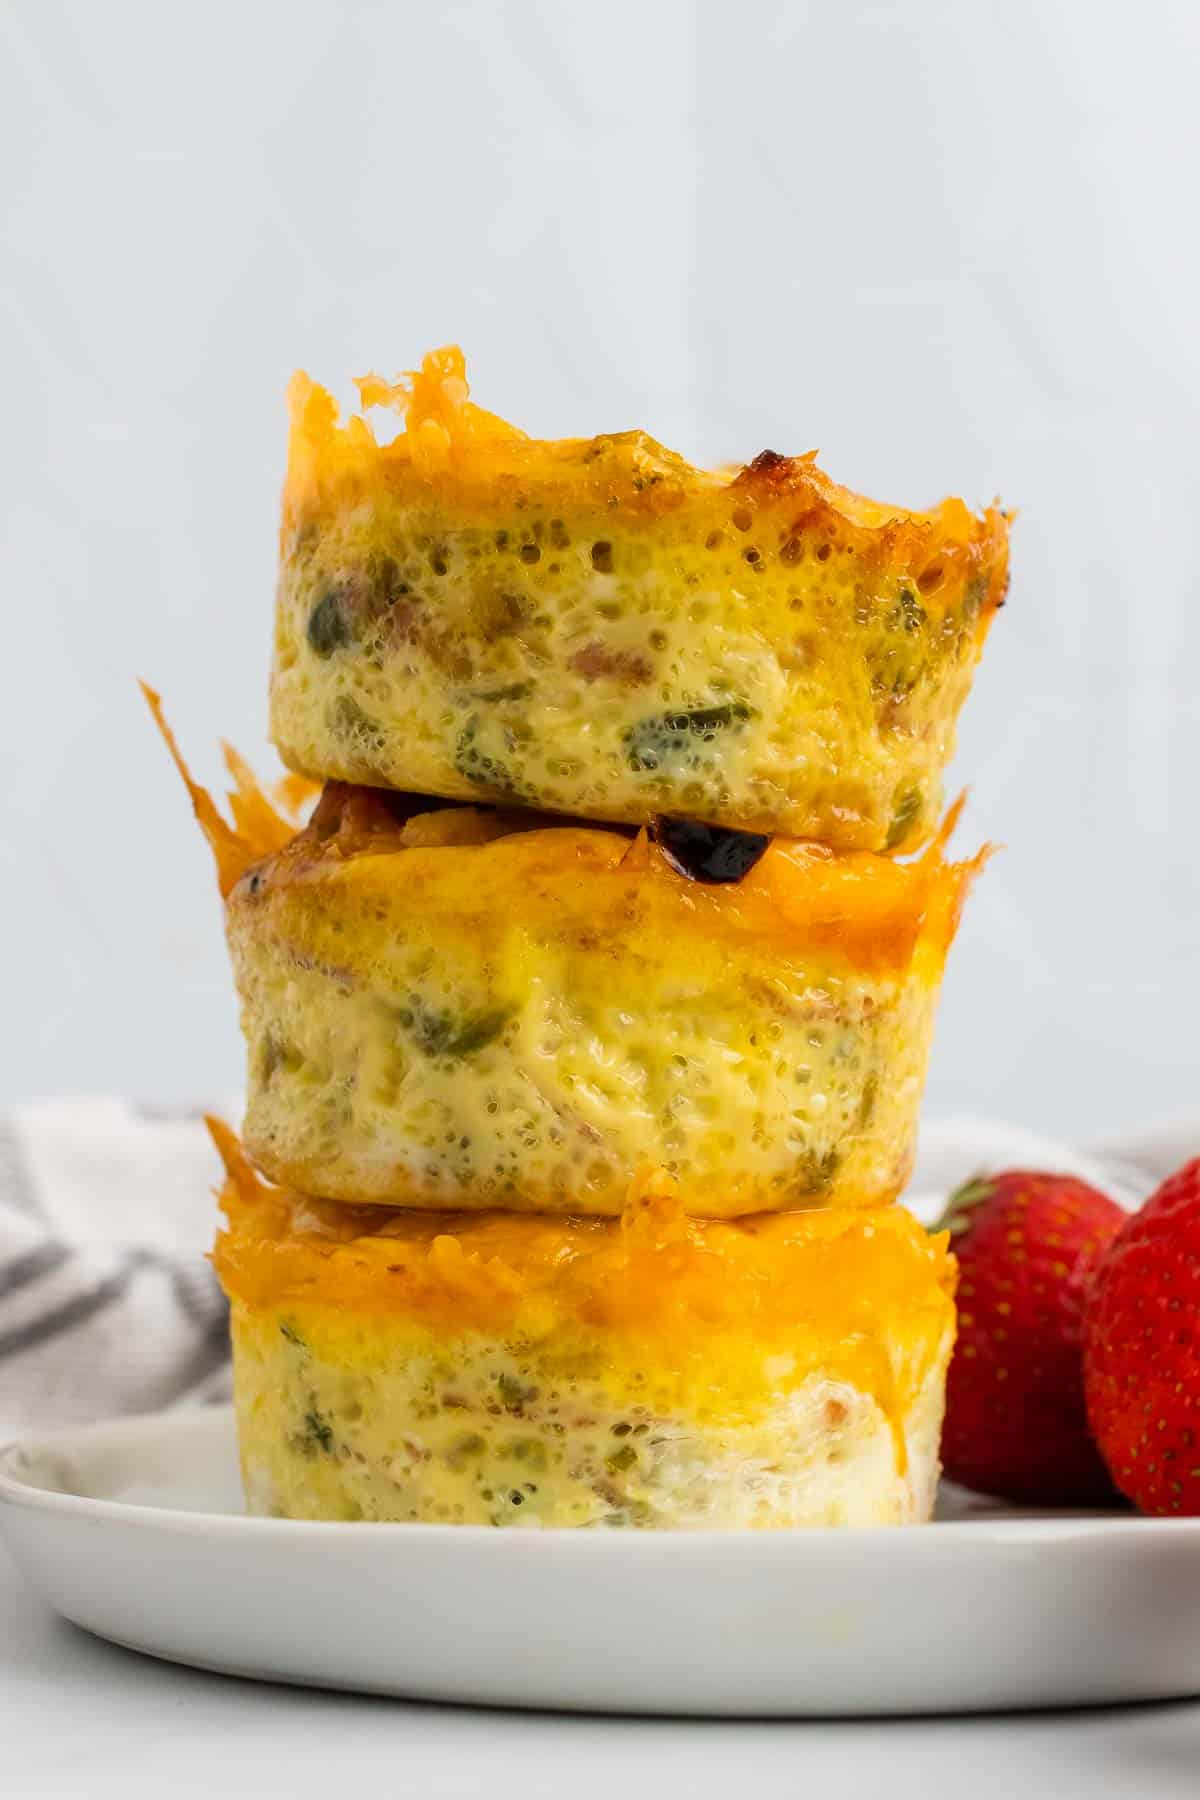 Stack of three egg muffins seen from the side